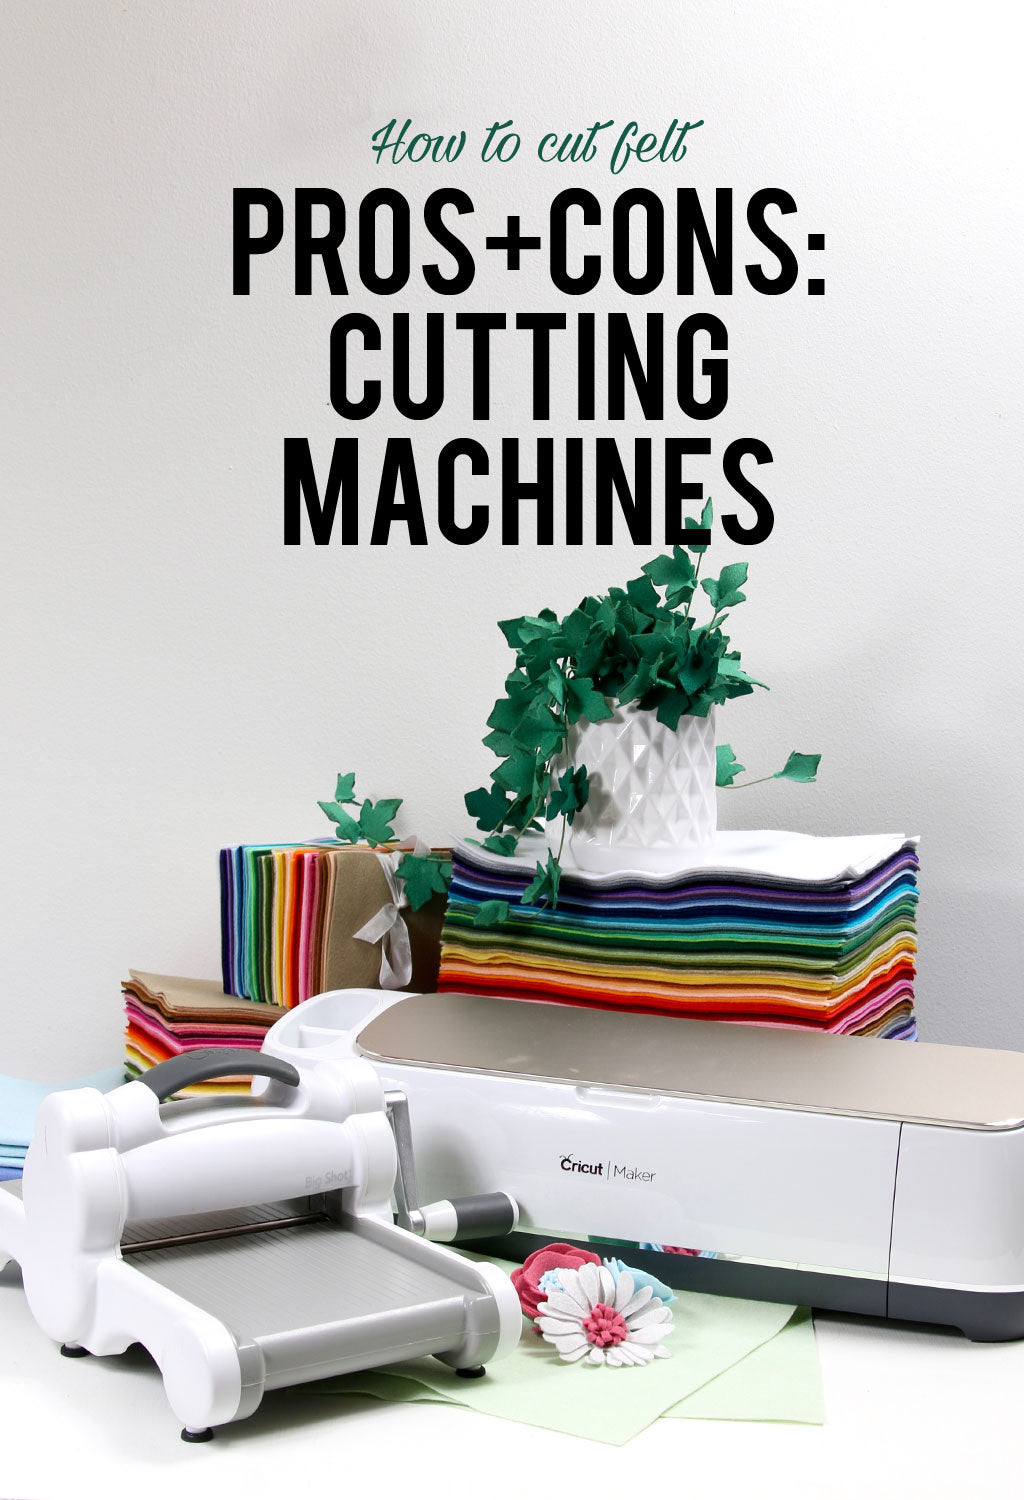 Pros and cons of cutting machines